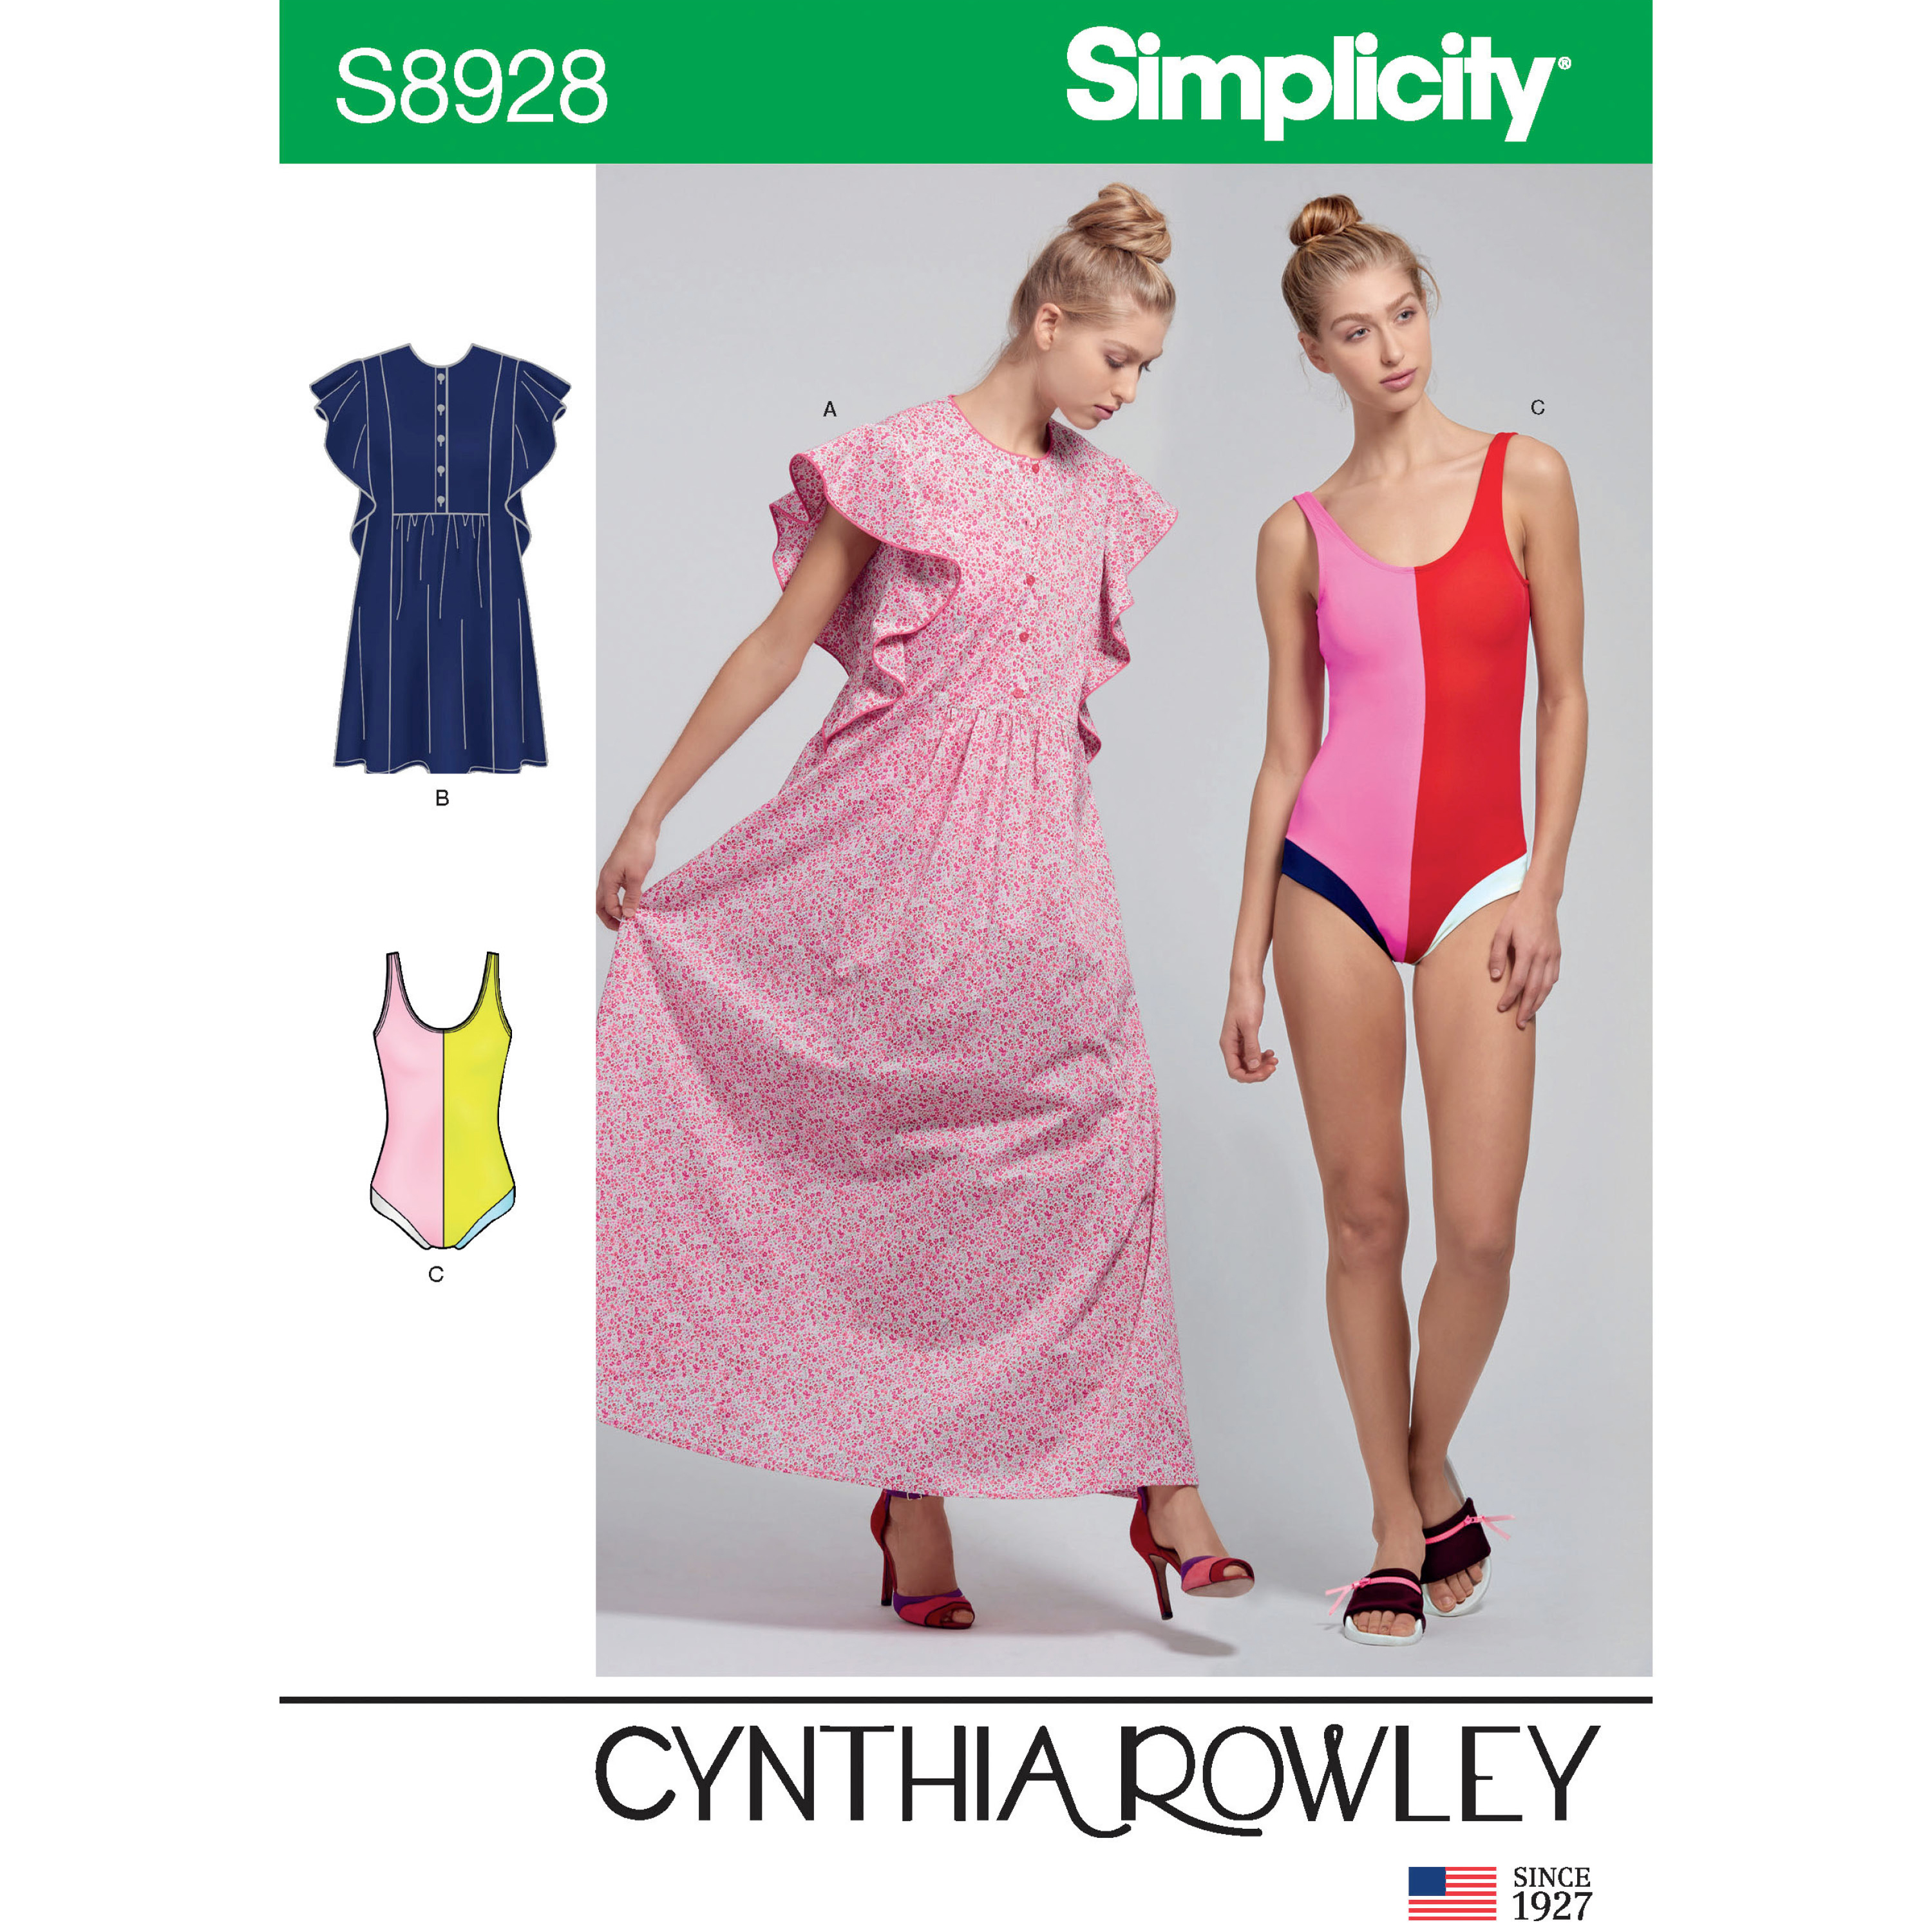 Simplicity Sewing Pattern 8928 Misses/' Swimsuit /& Caftans by Cynthia Rowley